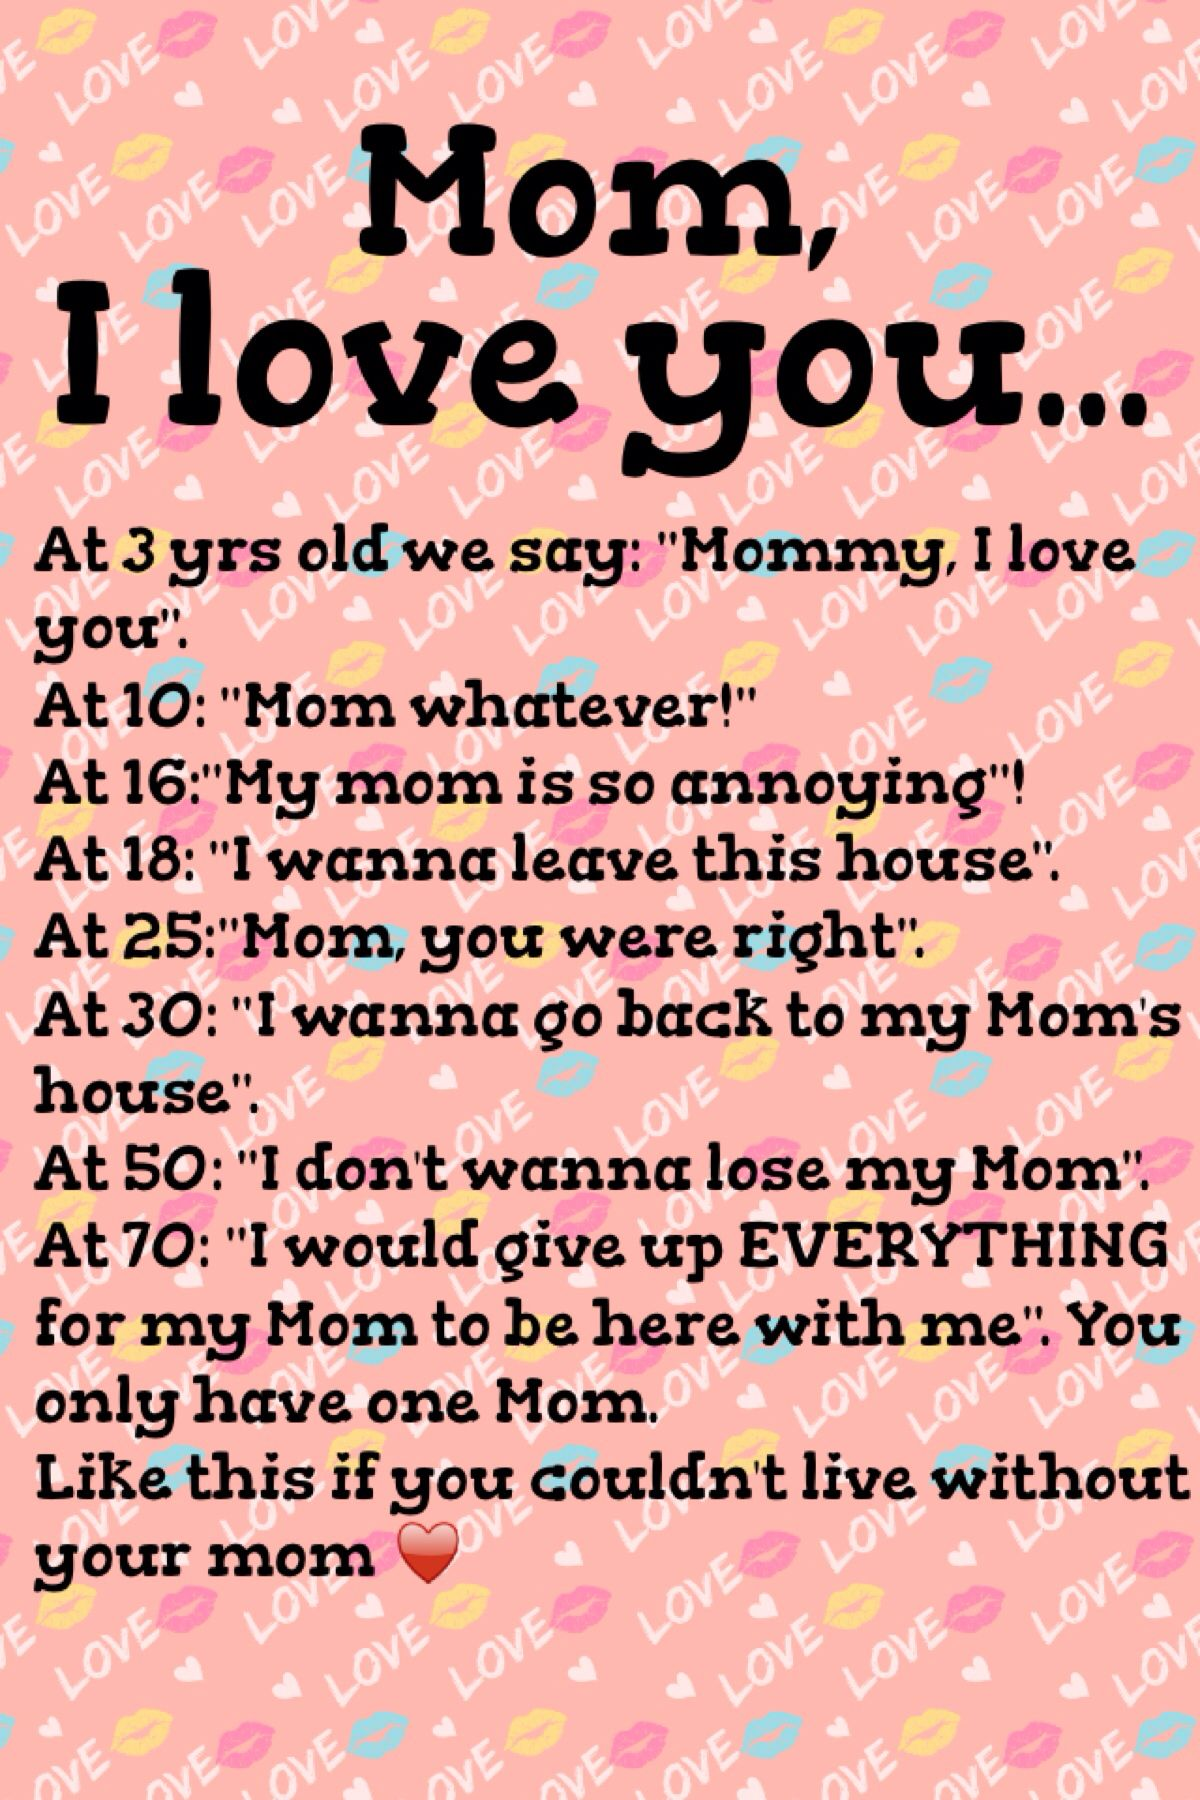 142 Love You Mom Quotes, Saying, Message, Caption (Mother